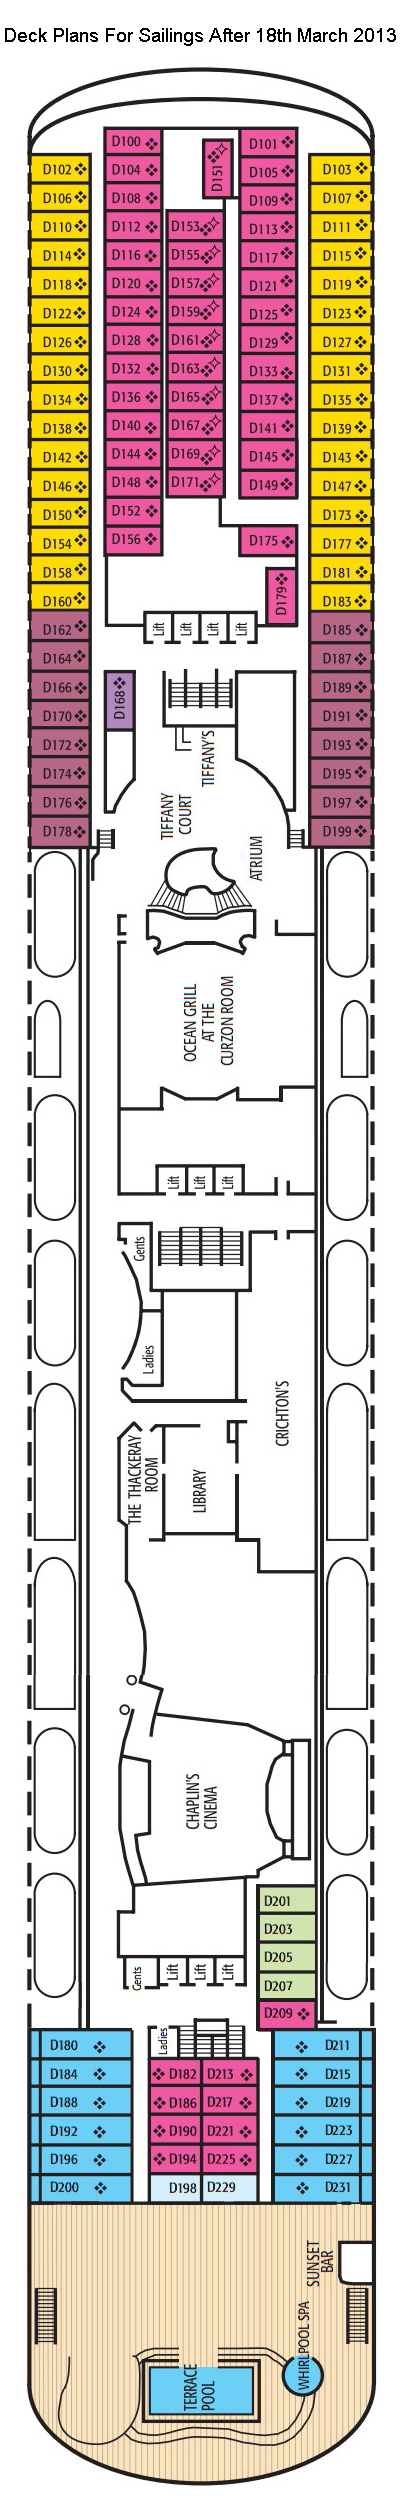 Oriana D Deck layout